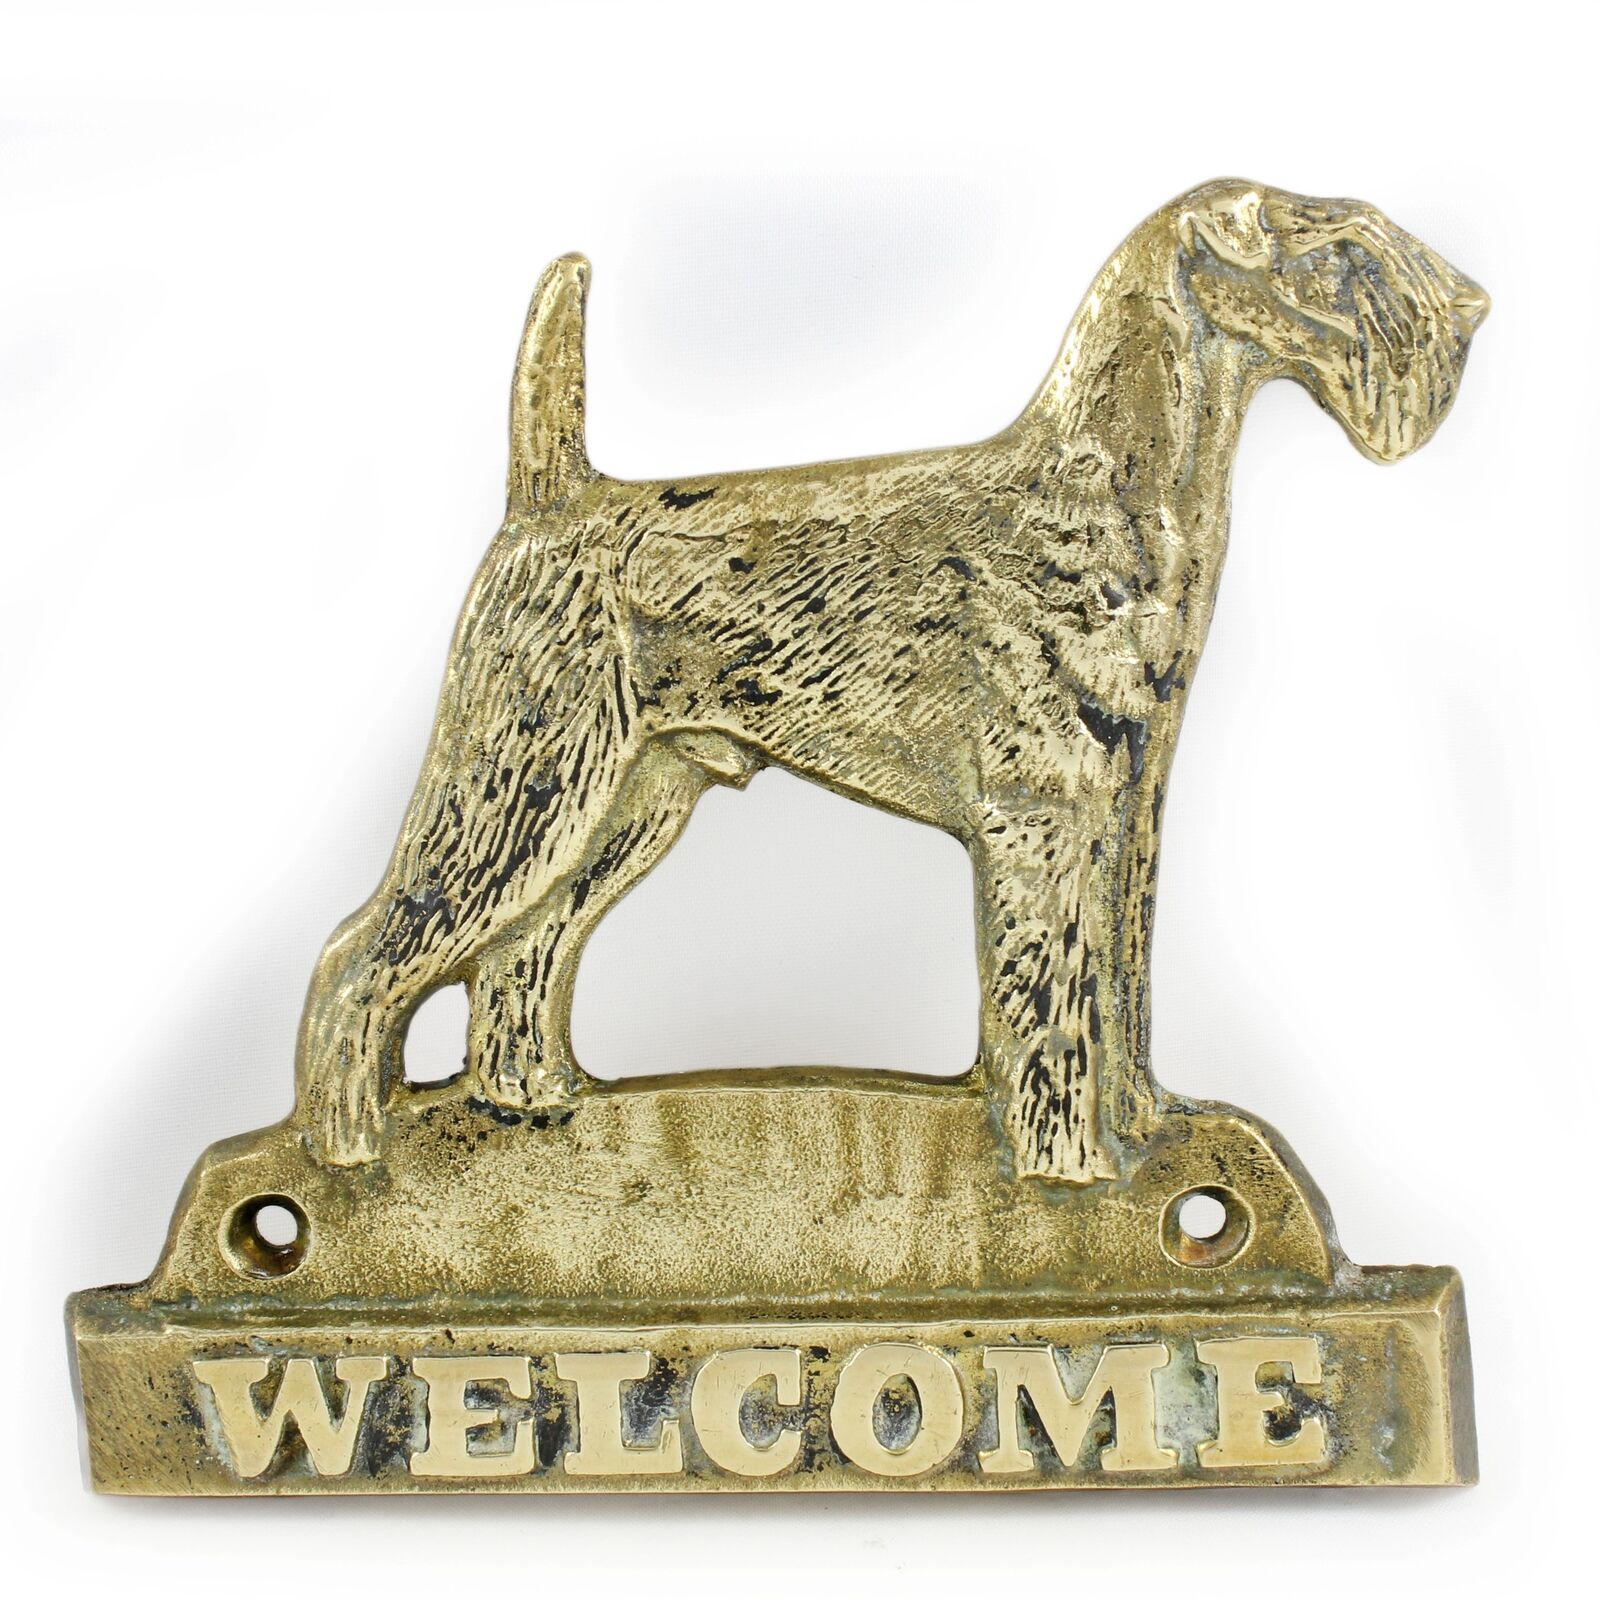 Airedale Terrier - brass tablet with image of a dog, Art Dog